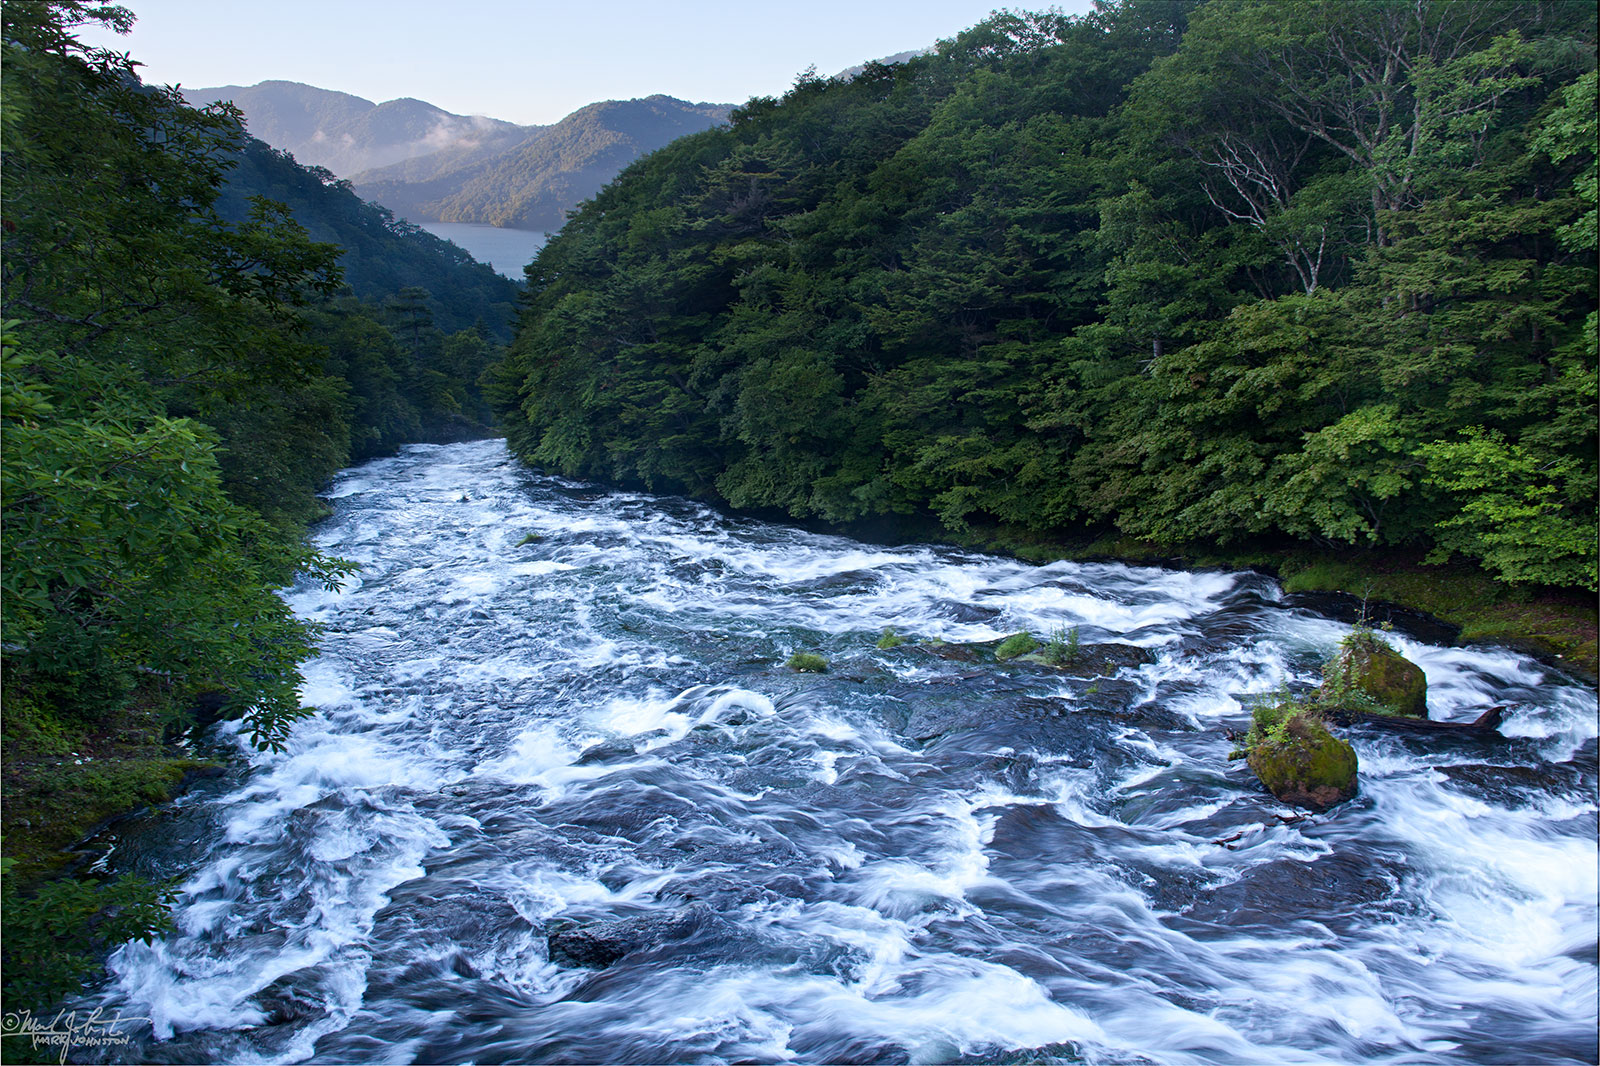 The Yukawa [湯川] river plummets towards Lake Chuzenji [中禅寺湖], Nikko [日光], Tochigi Prefecture [栃木県], Japan.